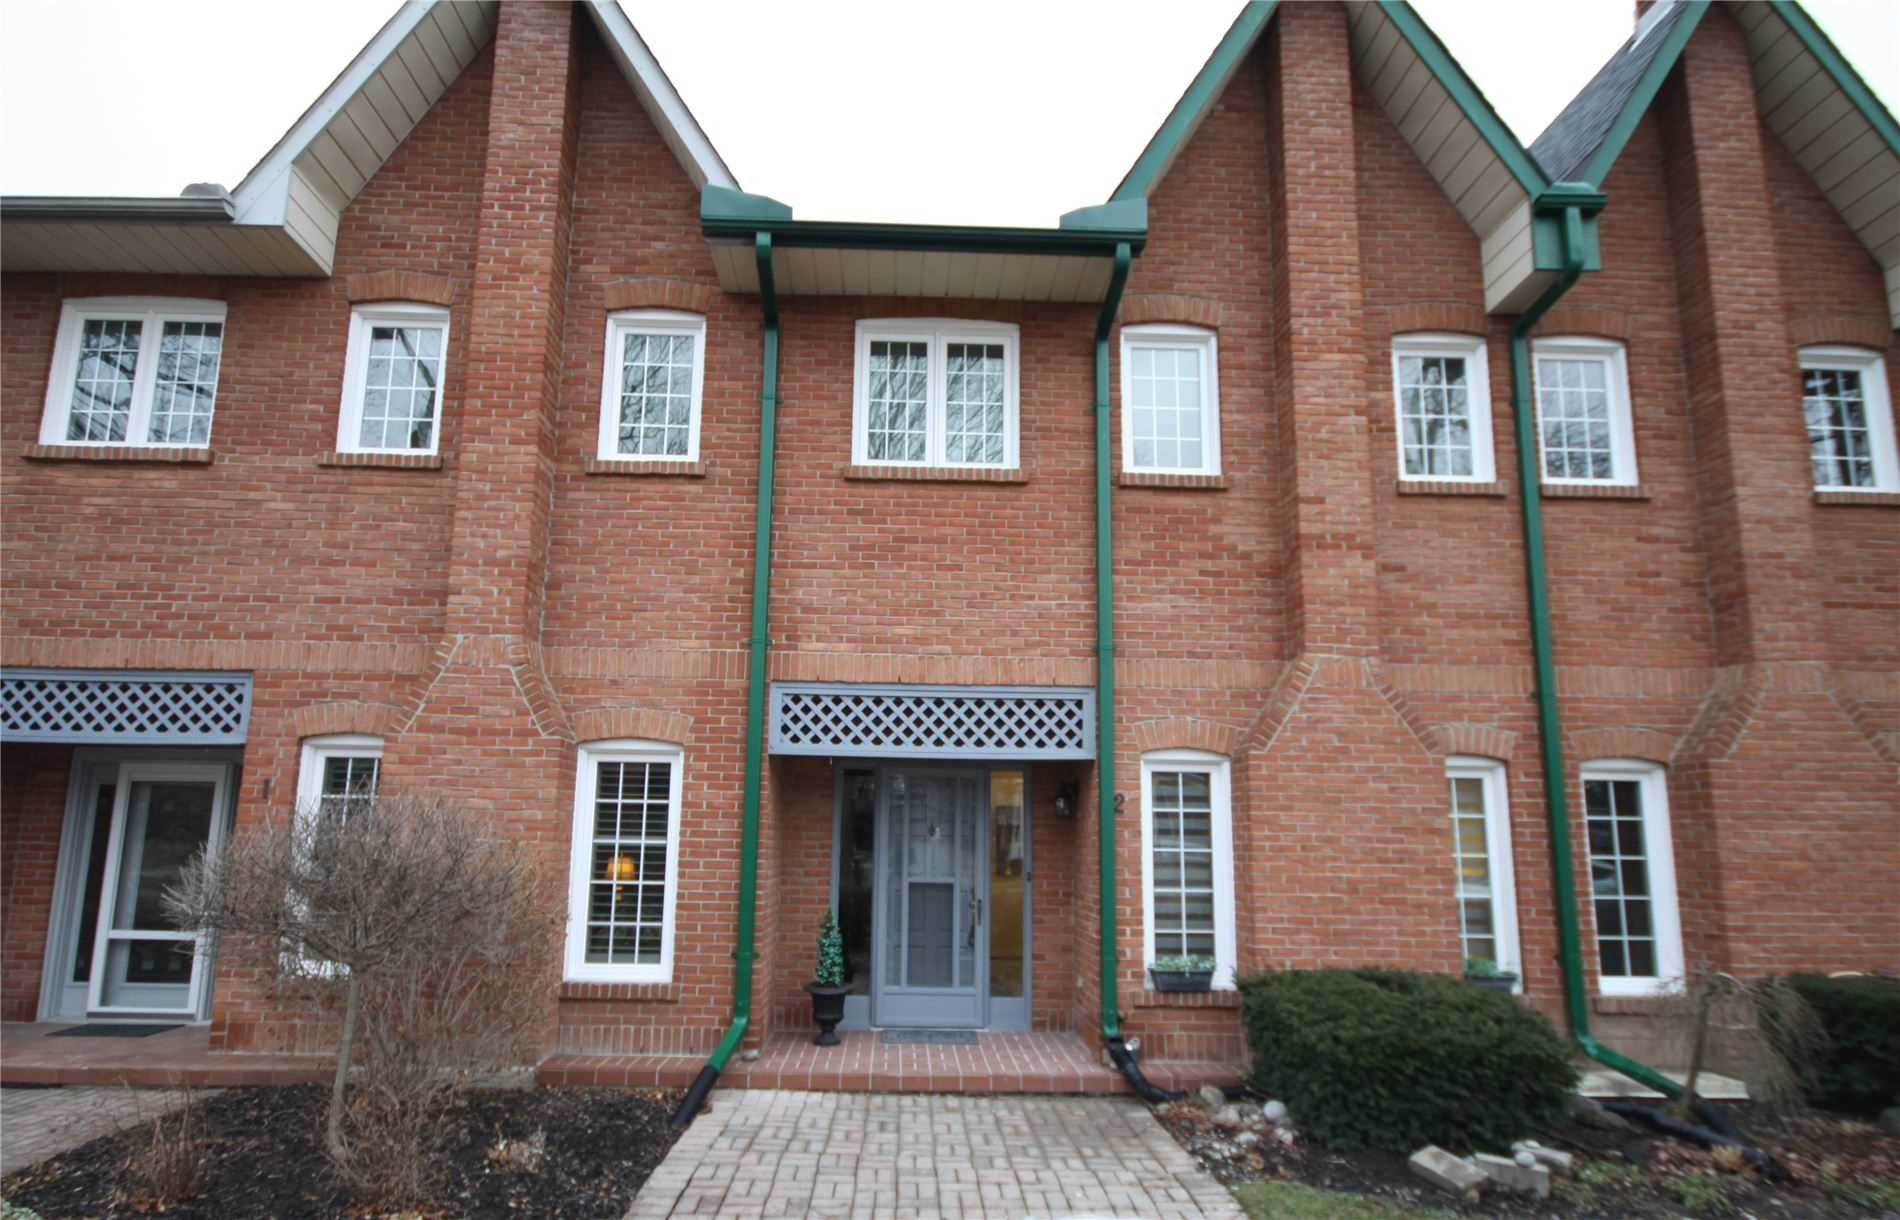 For Sale: 2 - 110 Mary Street West, Whitby, ON | 1 Bed, 2 Bath Townhouse for $459900.00. See 17 photos!